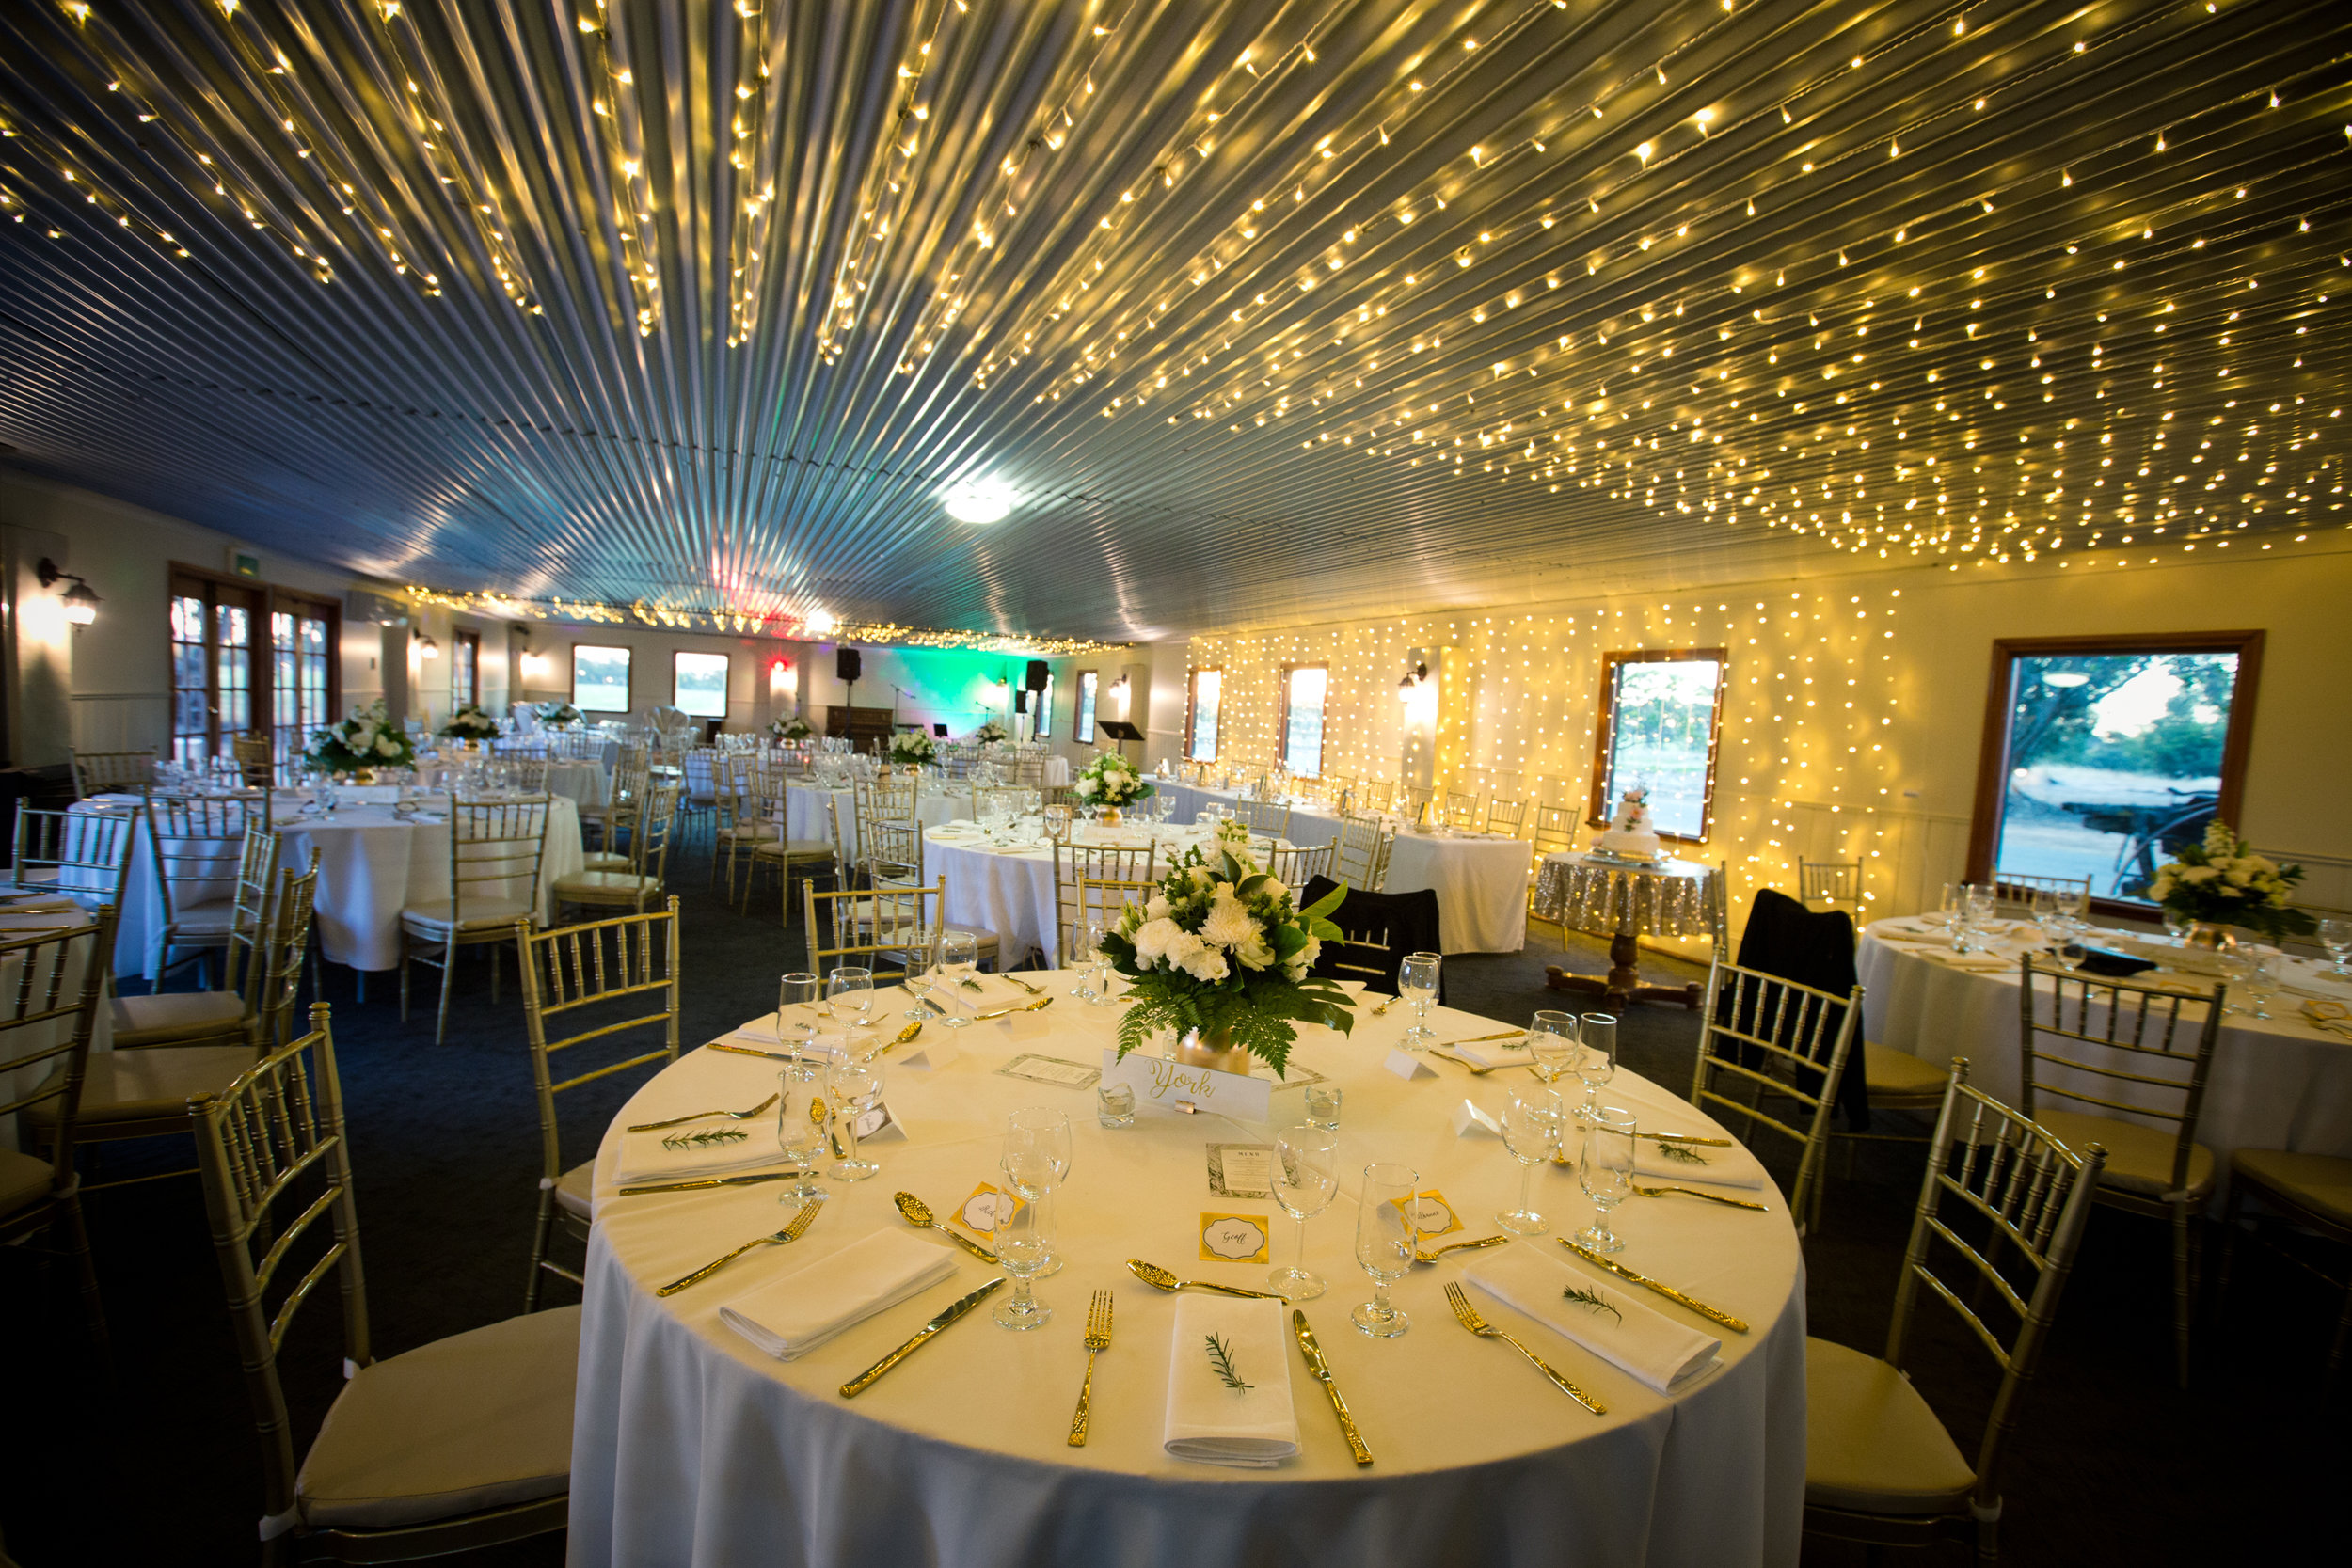 The Perfect Wedding - The Function Room is licensed for 150 people, although with the dance floor can comfortably fit 120 seated. This is perfect for a wedding or special birthday party, and has its own private licensed outdoor area the south side.